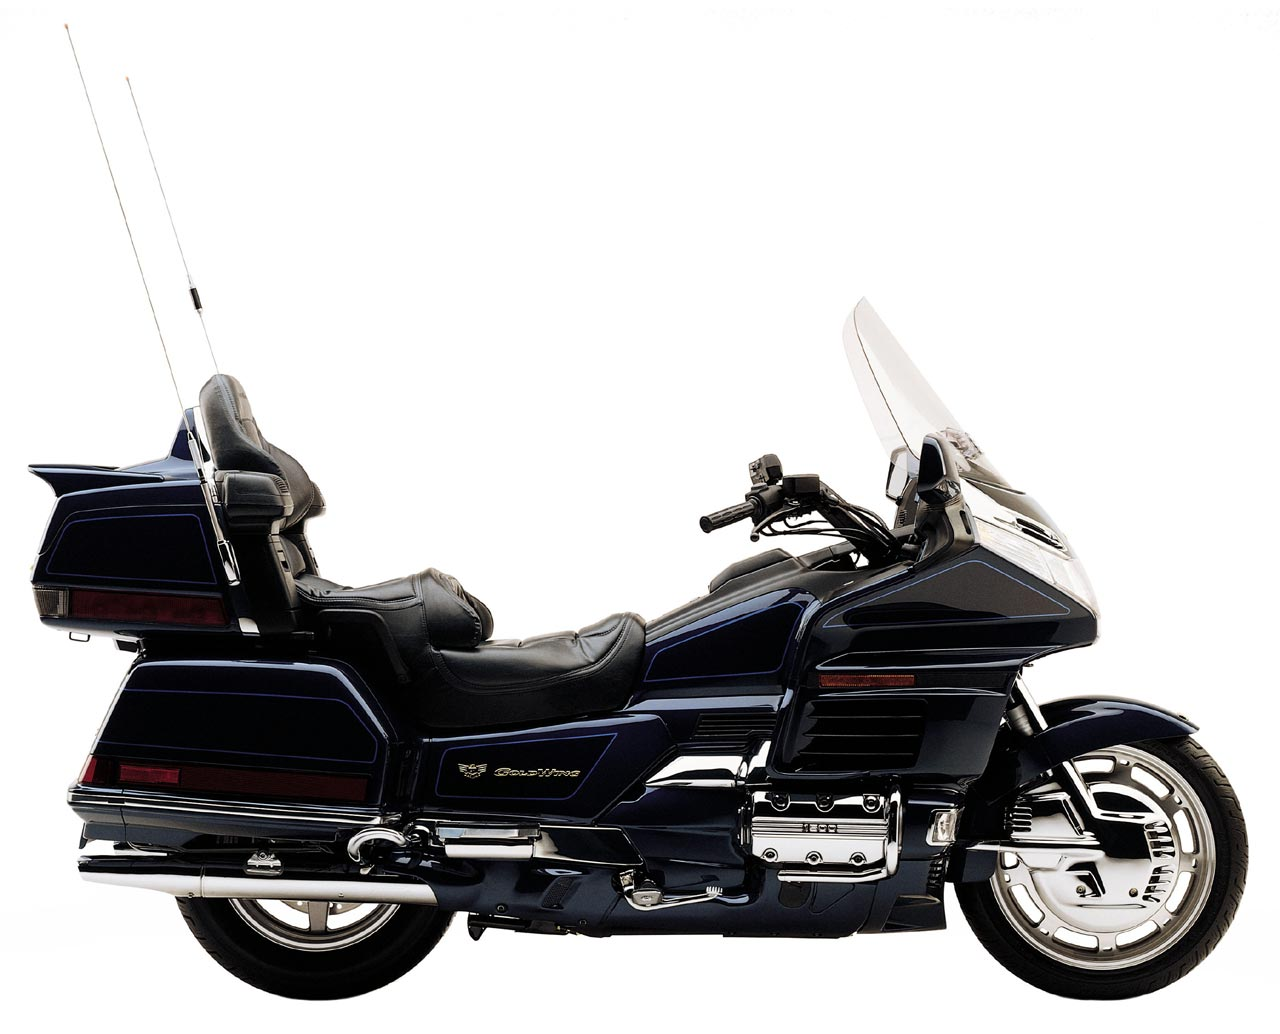 Honda Gold Wing GL1500, GL1500I GW Interstate, GL1500 SE,